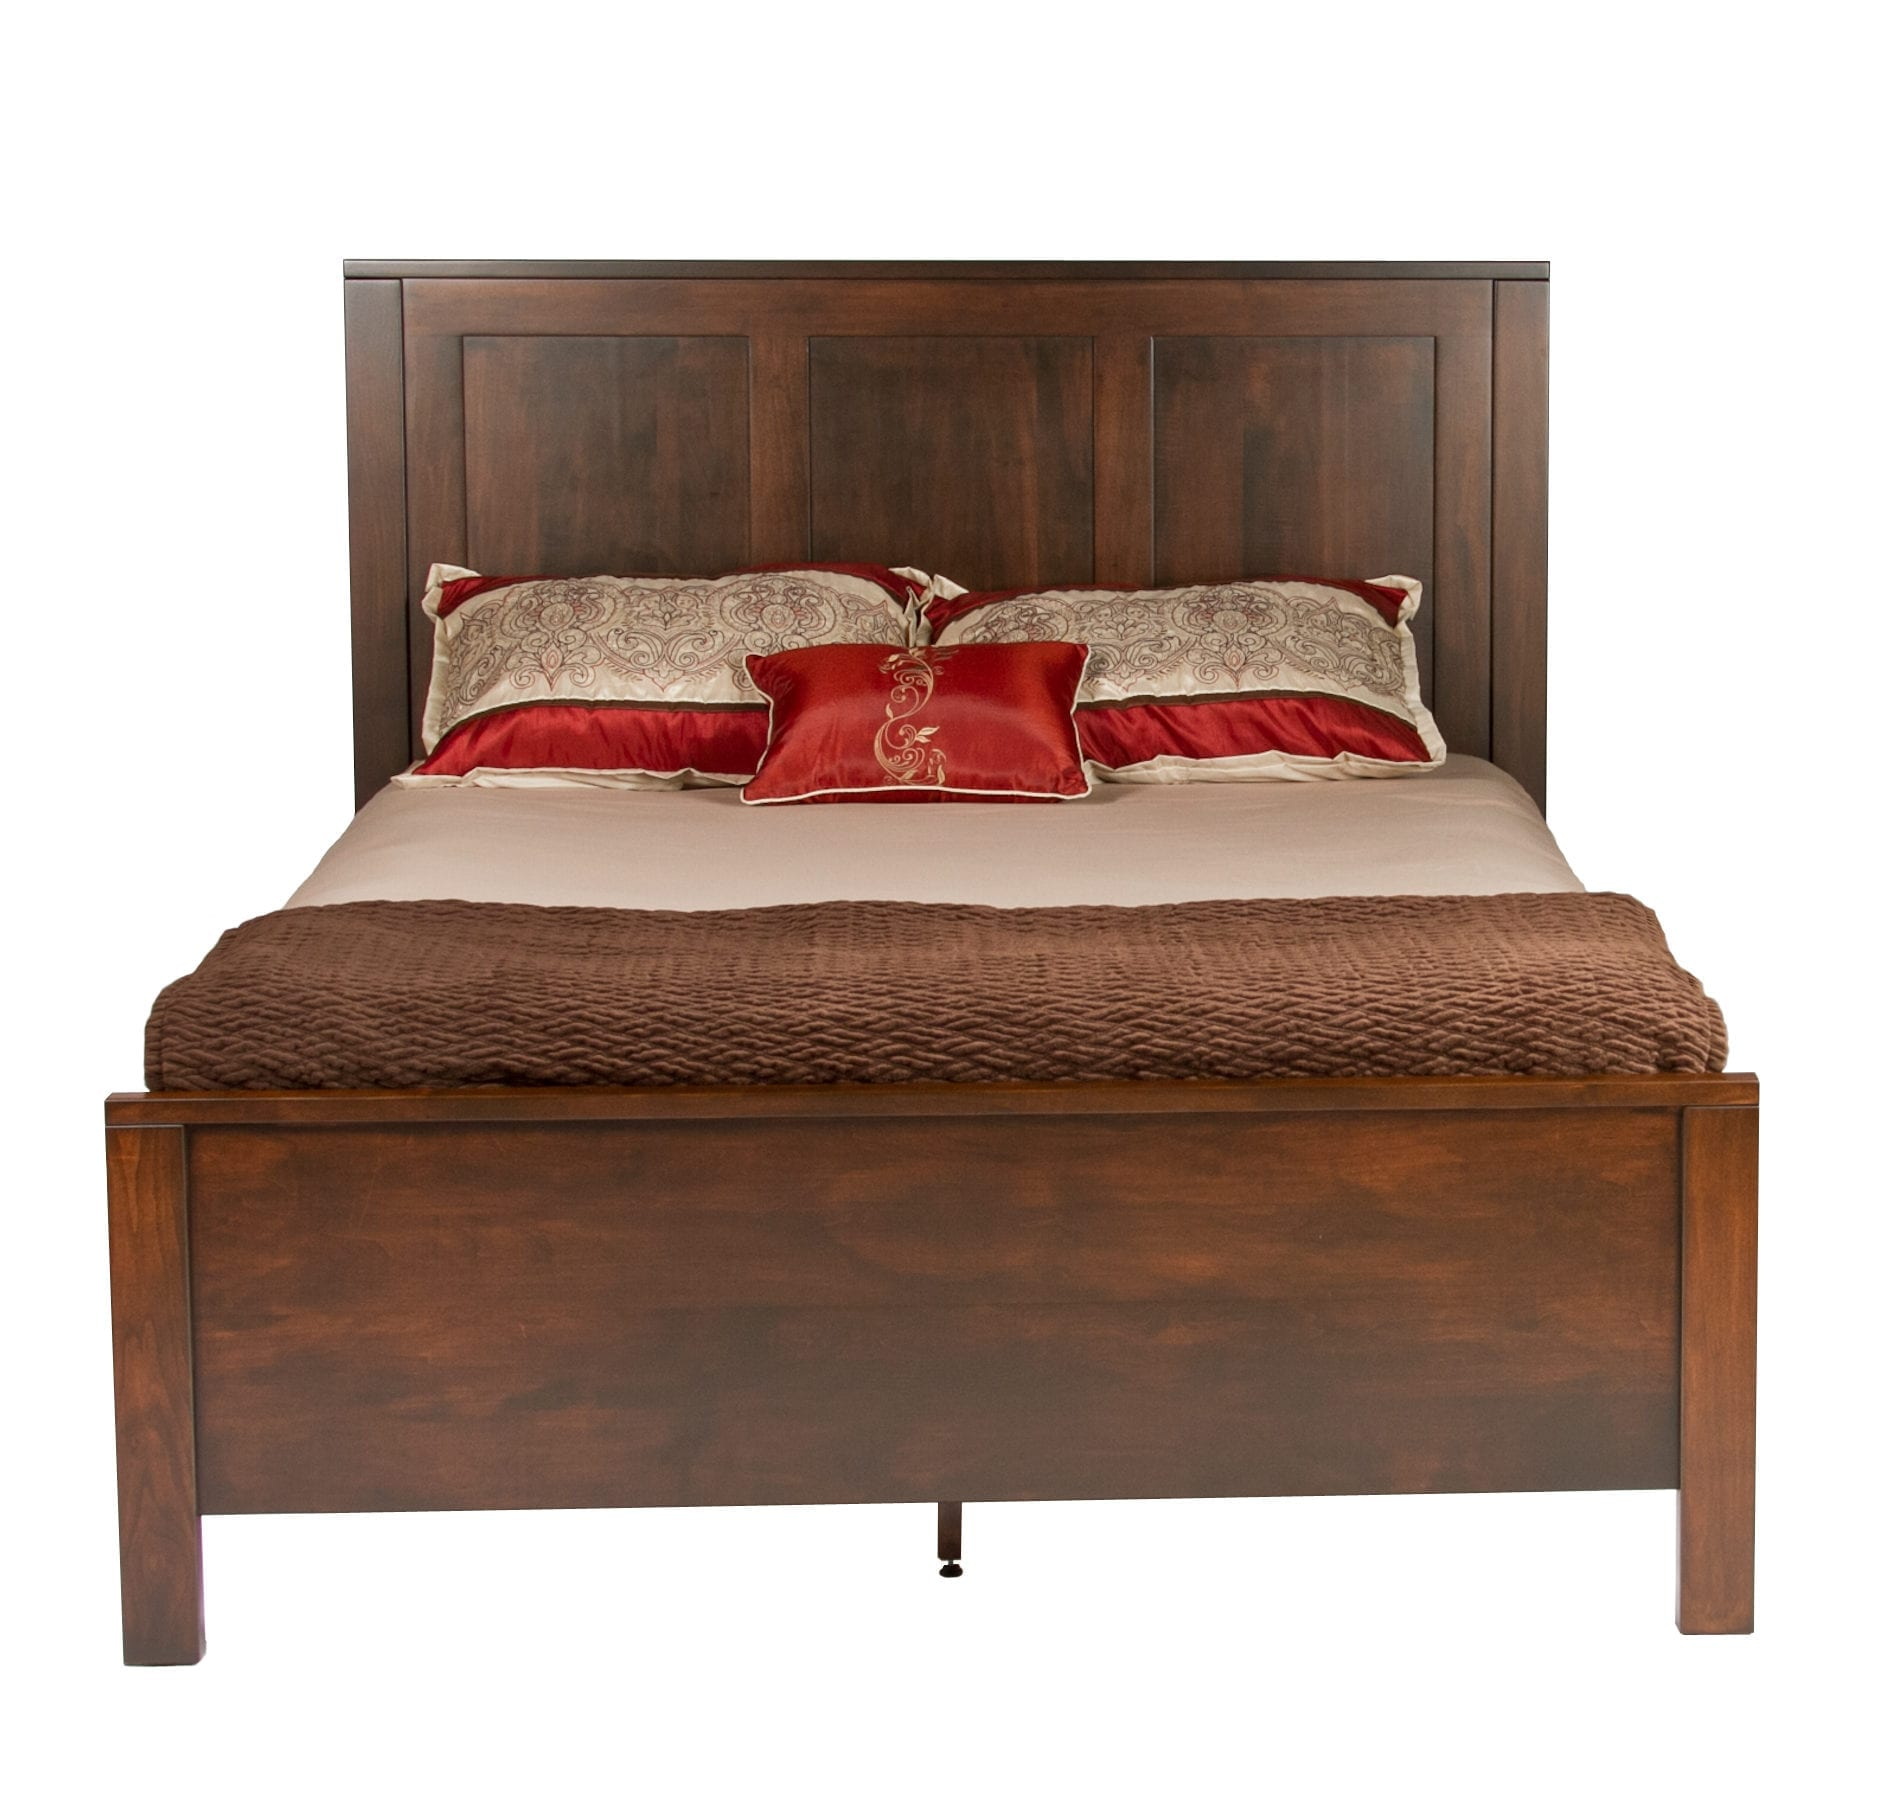 KVADRO Mission Bed / Amish Solid Wood Beds